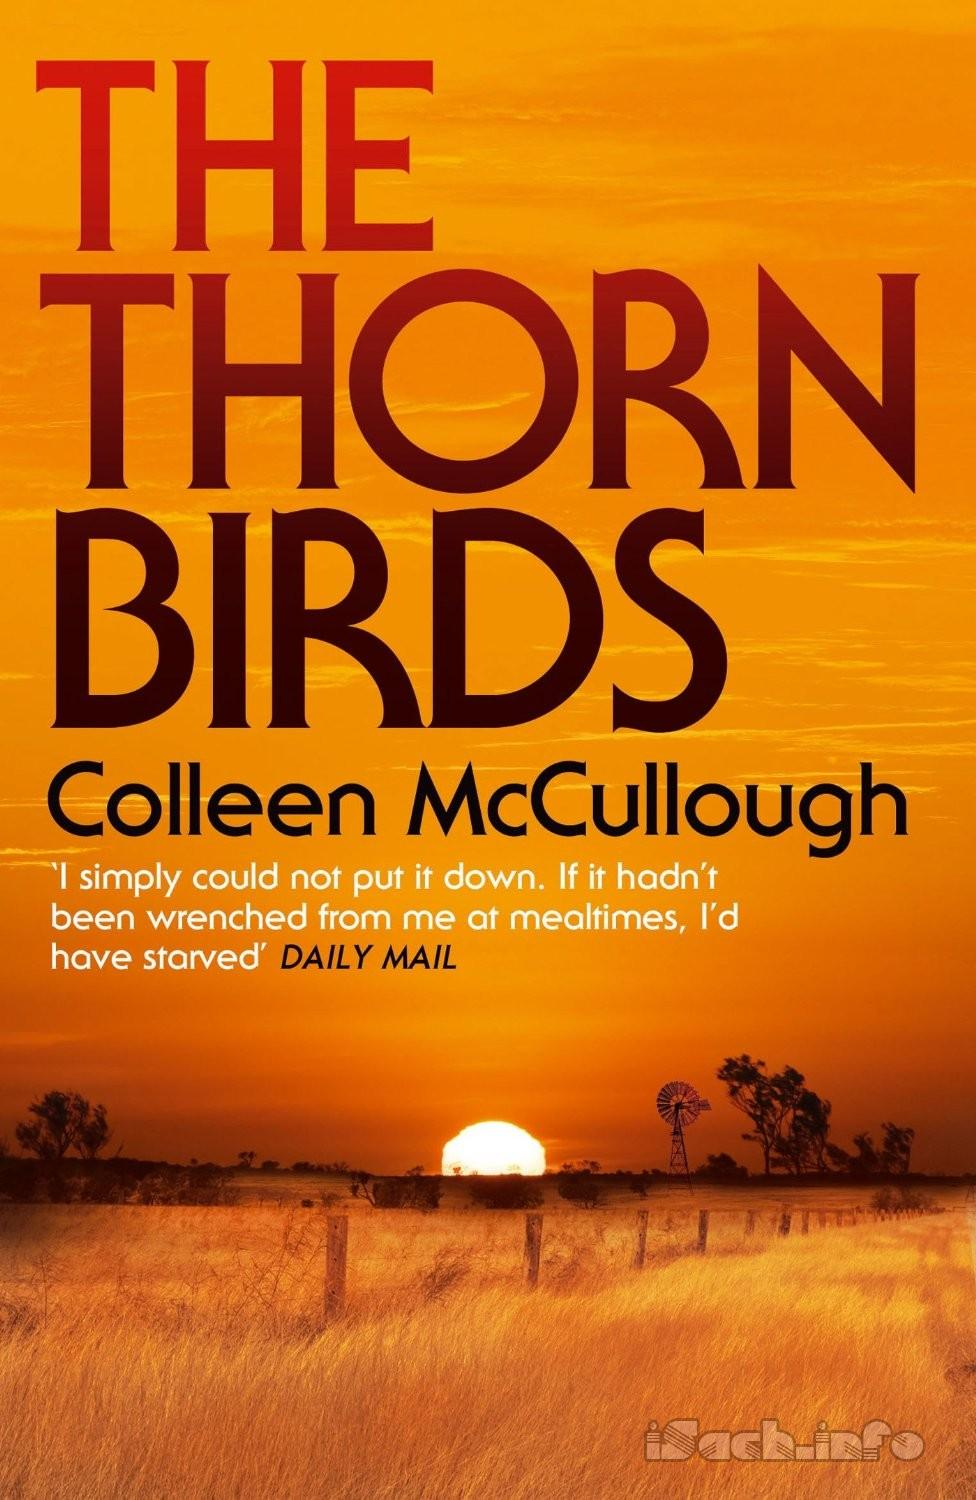 Book Cover Design Of Birds : The thorn birds colleen mccullough